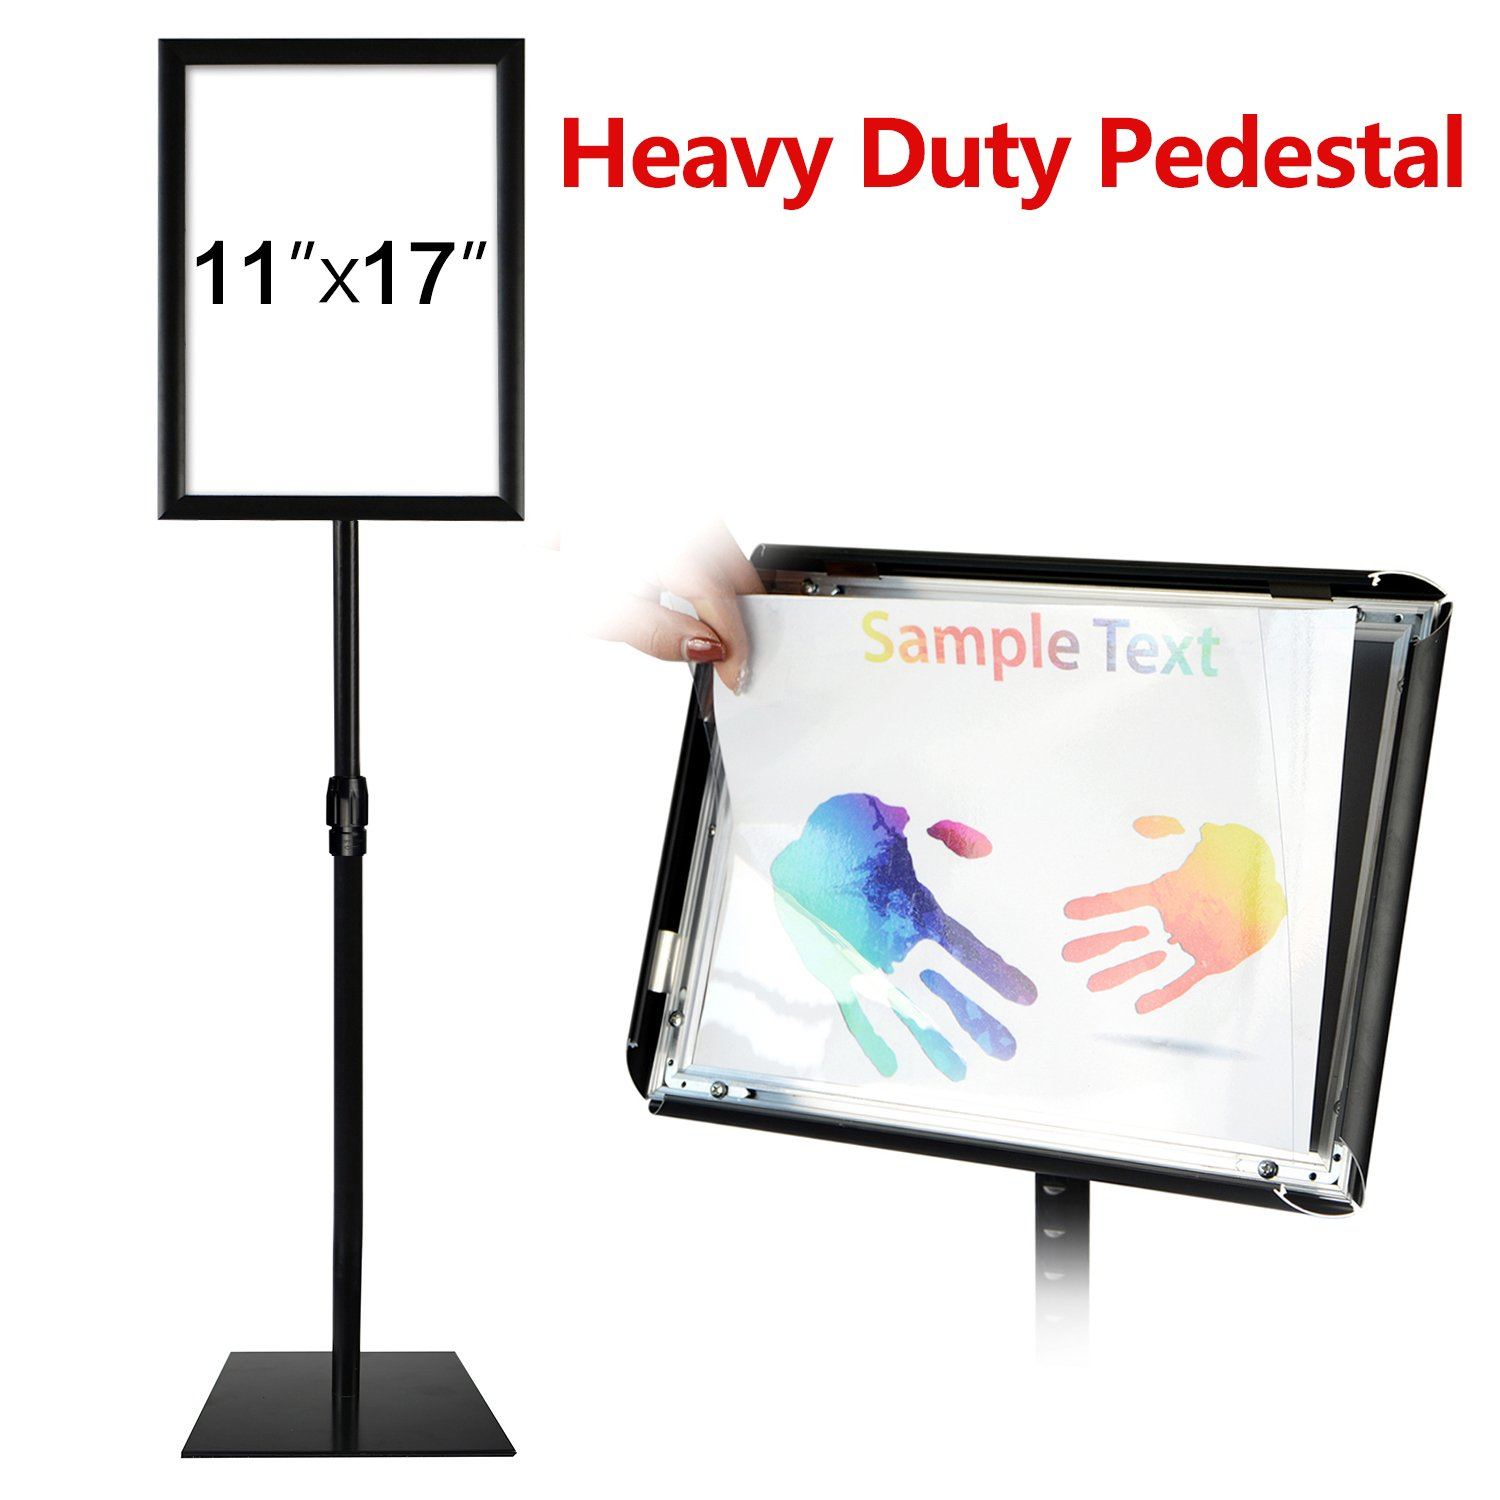 T-SIGN Adjustable Heavy Duty Pedestal Poster Stand, Square Steel Base, 11 x 17 Inch Aluminum Snap Open Frame, Vertical and Horizontal Displayed, Black by T-SIGN